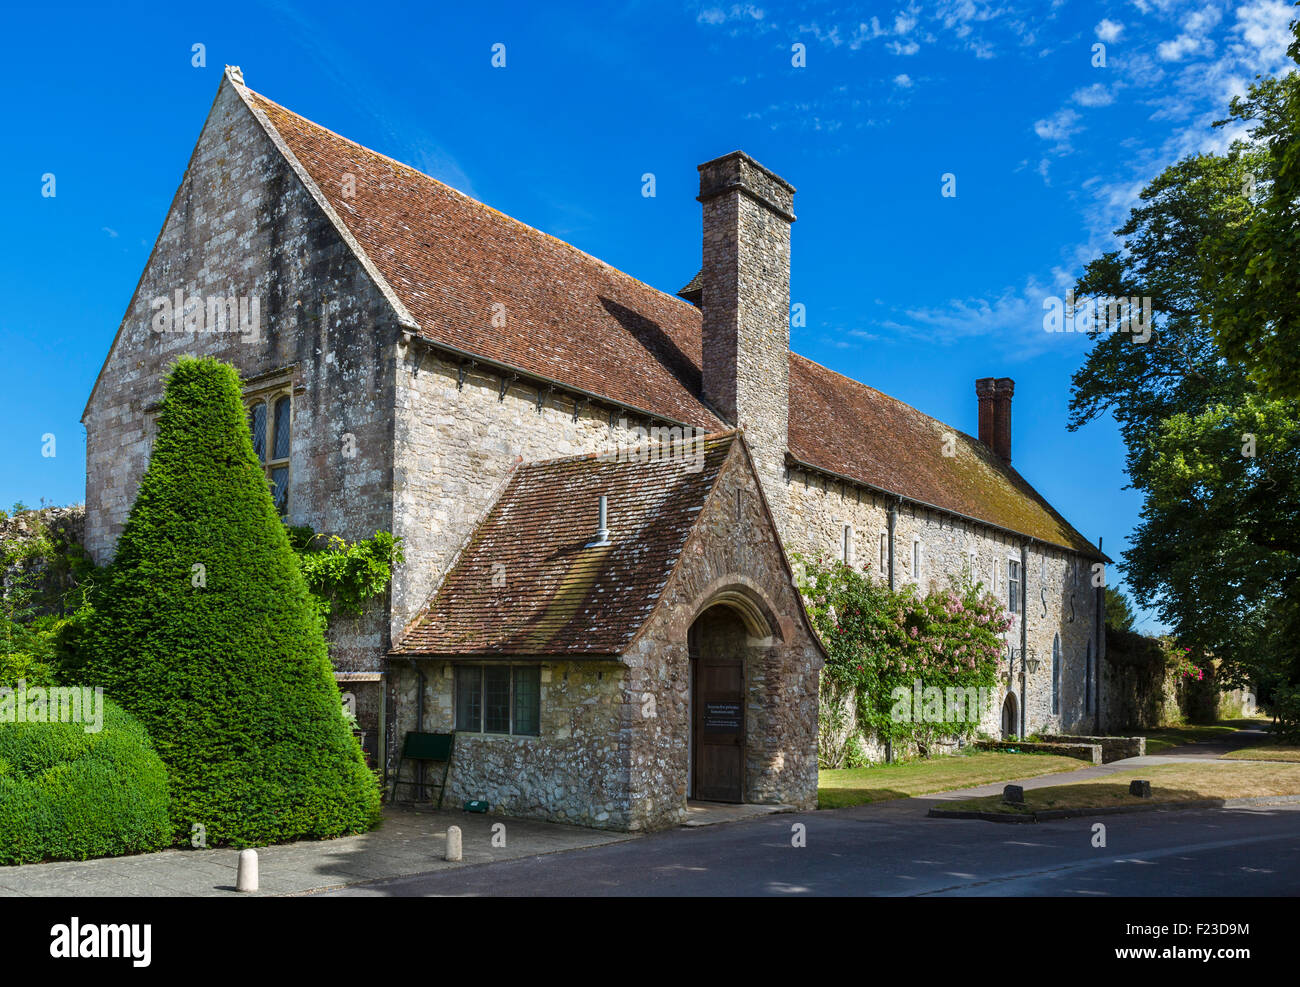 The Domus (lay brothers' dormitory), Beaulieu Abbey, Beaulieu, Hampshire, England, UK - Stock Image